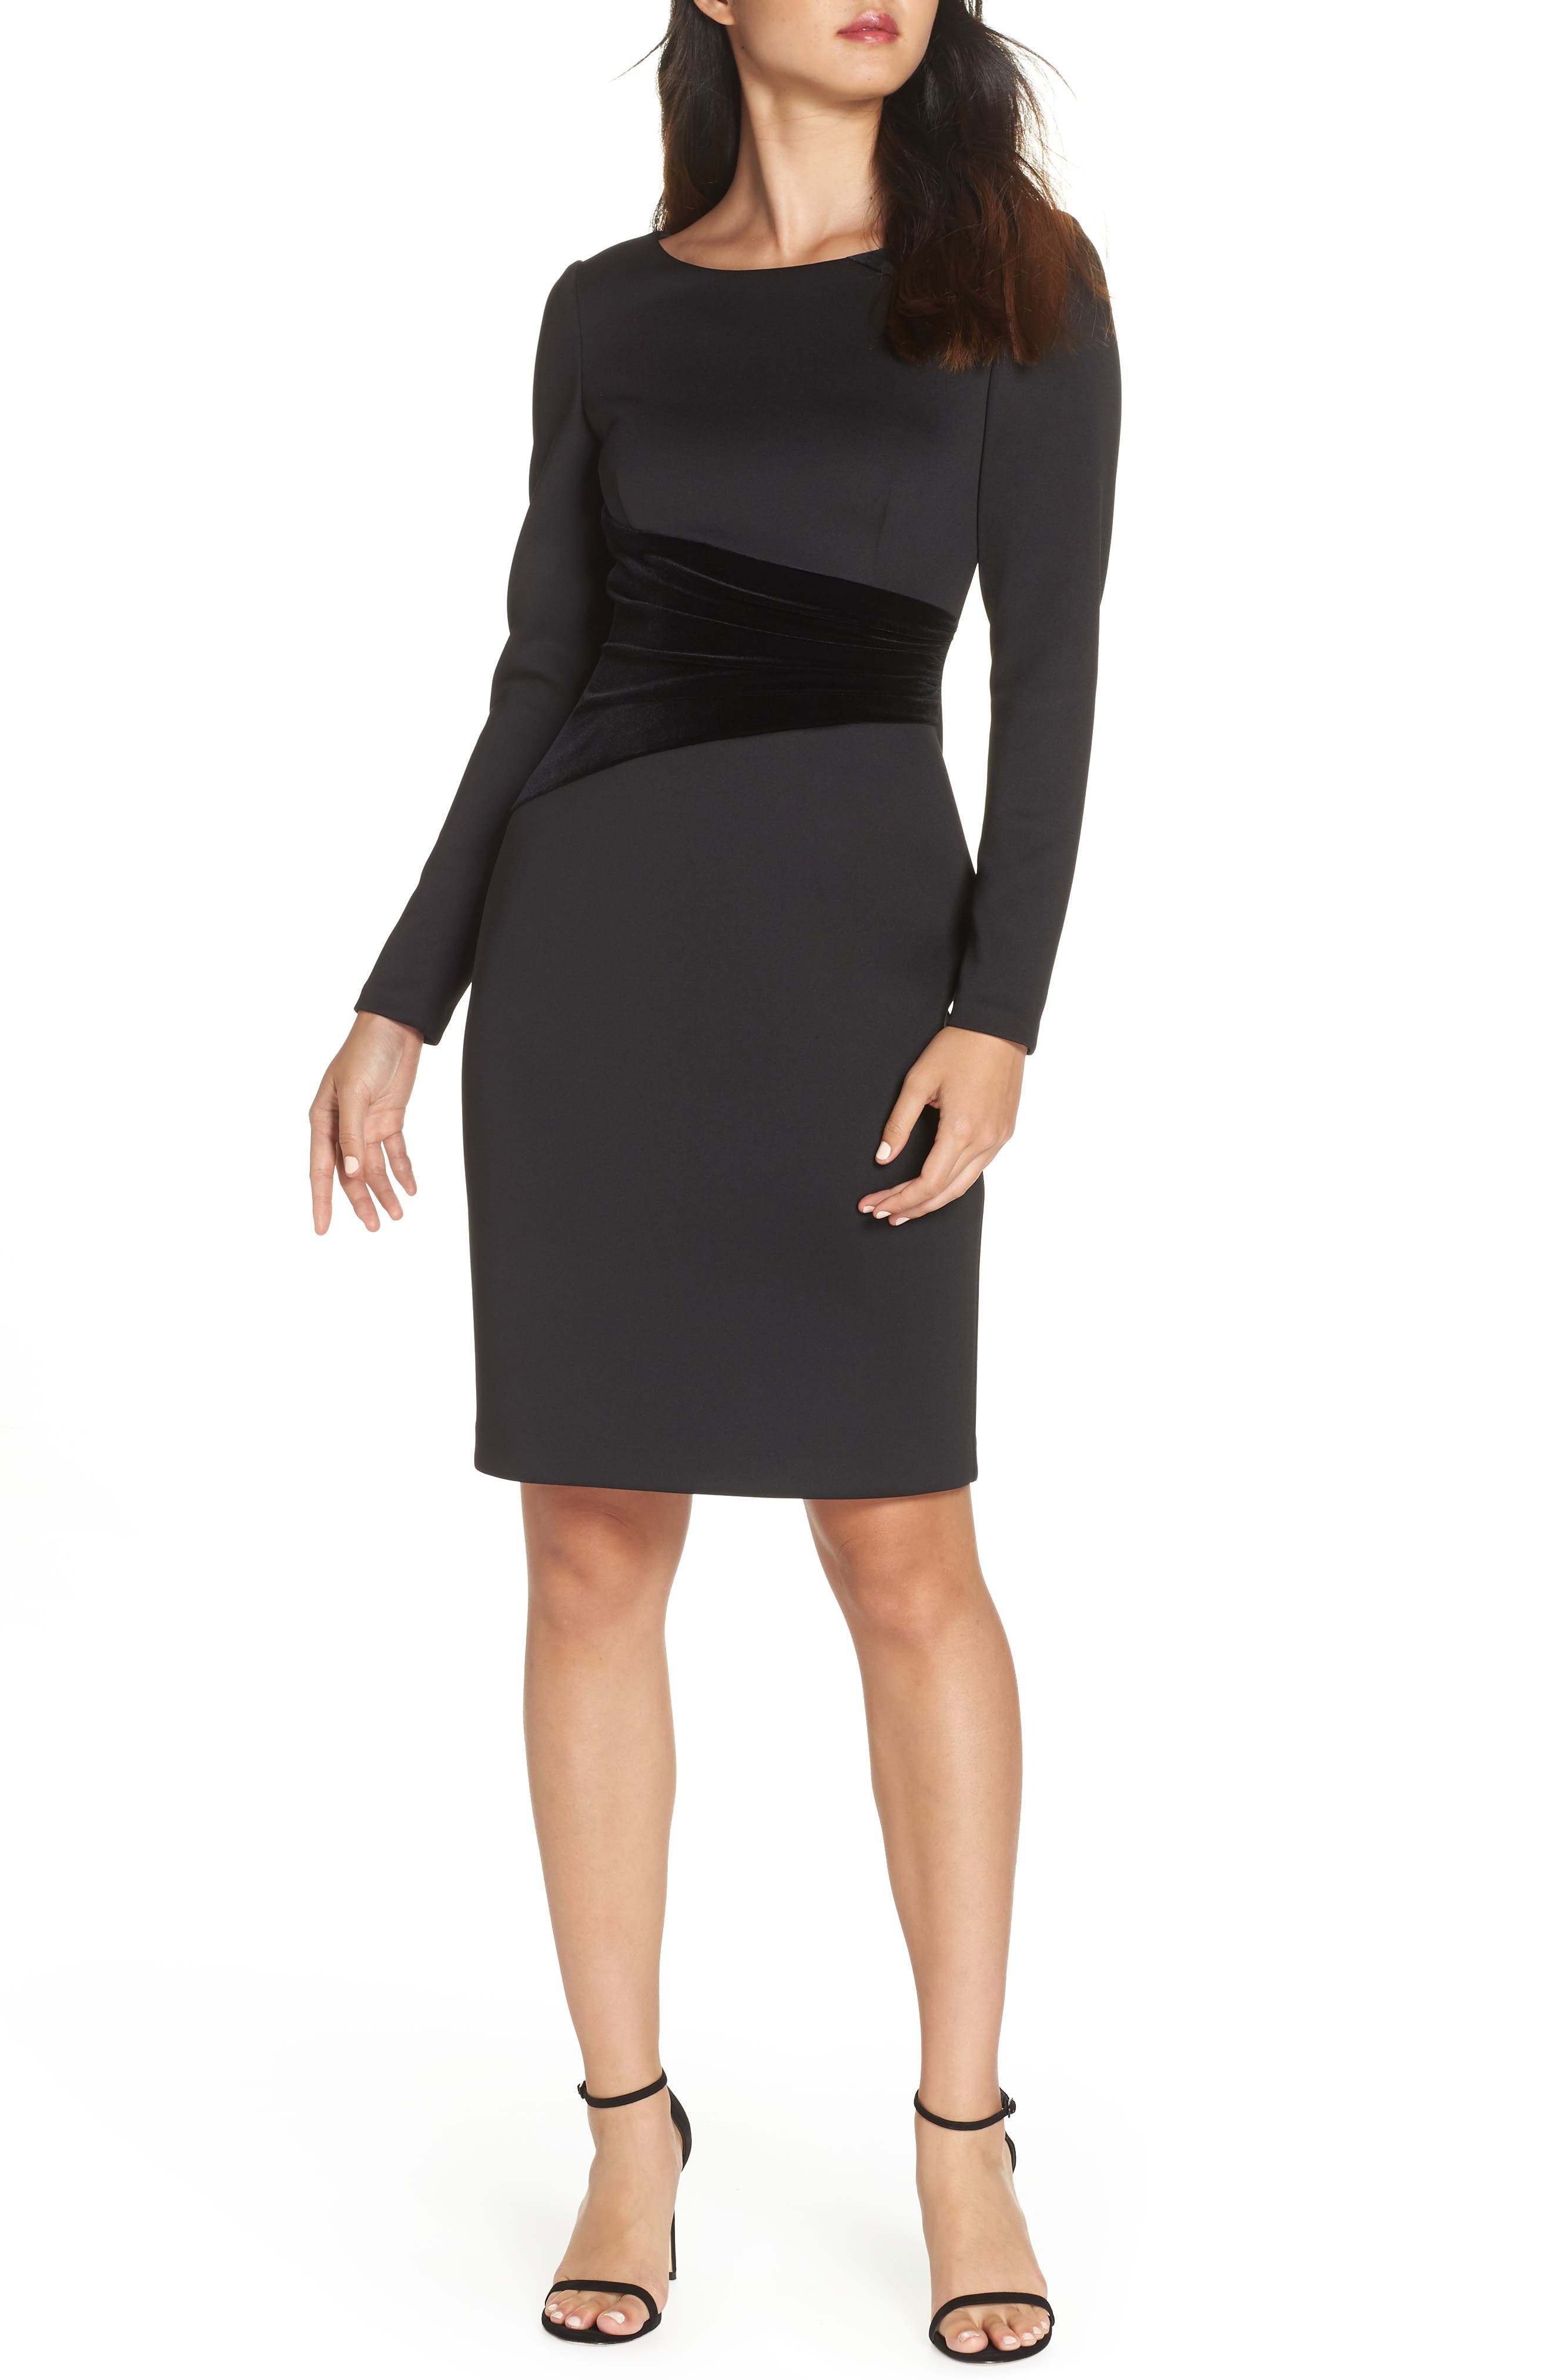 Vince Camuto Contrast Dress, Black